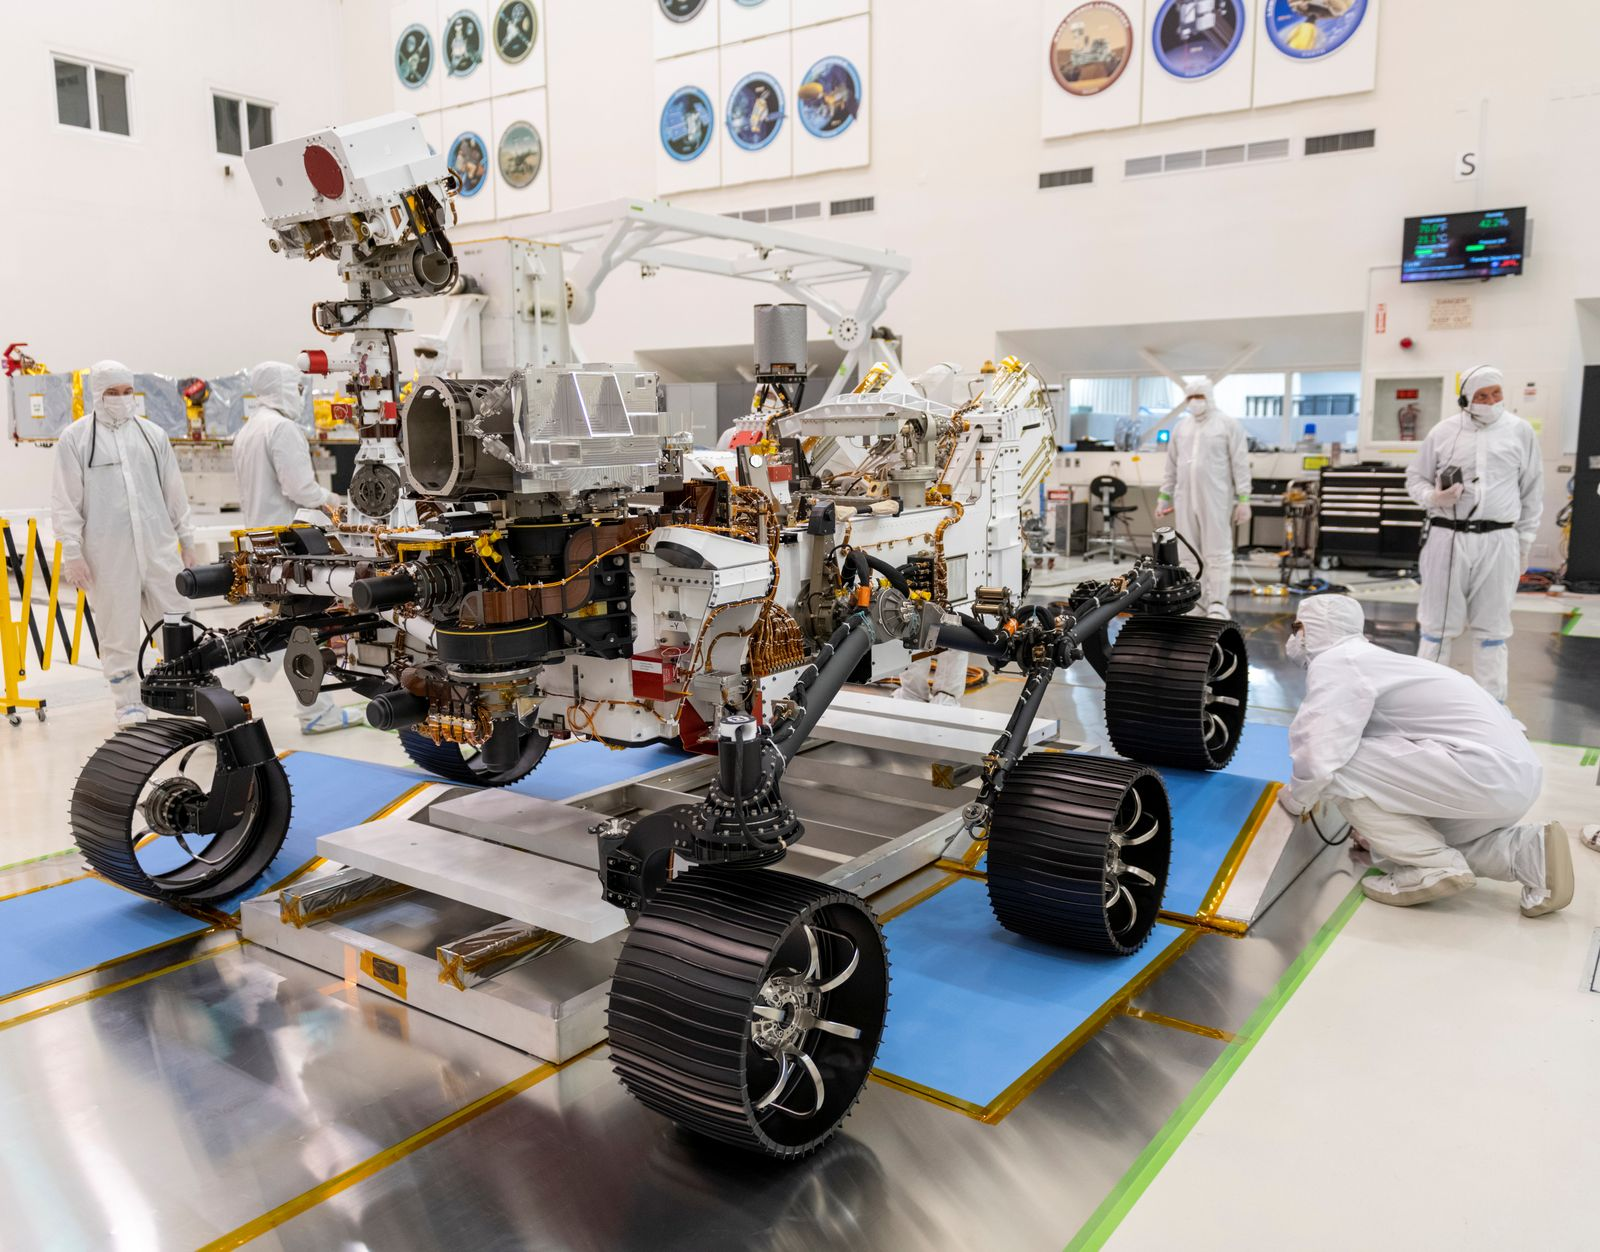 Engineers observe the first driving test for NASA's Perseverance Mars rover in a clean room at Jet Propulsion Laboratory